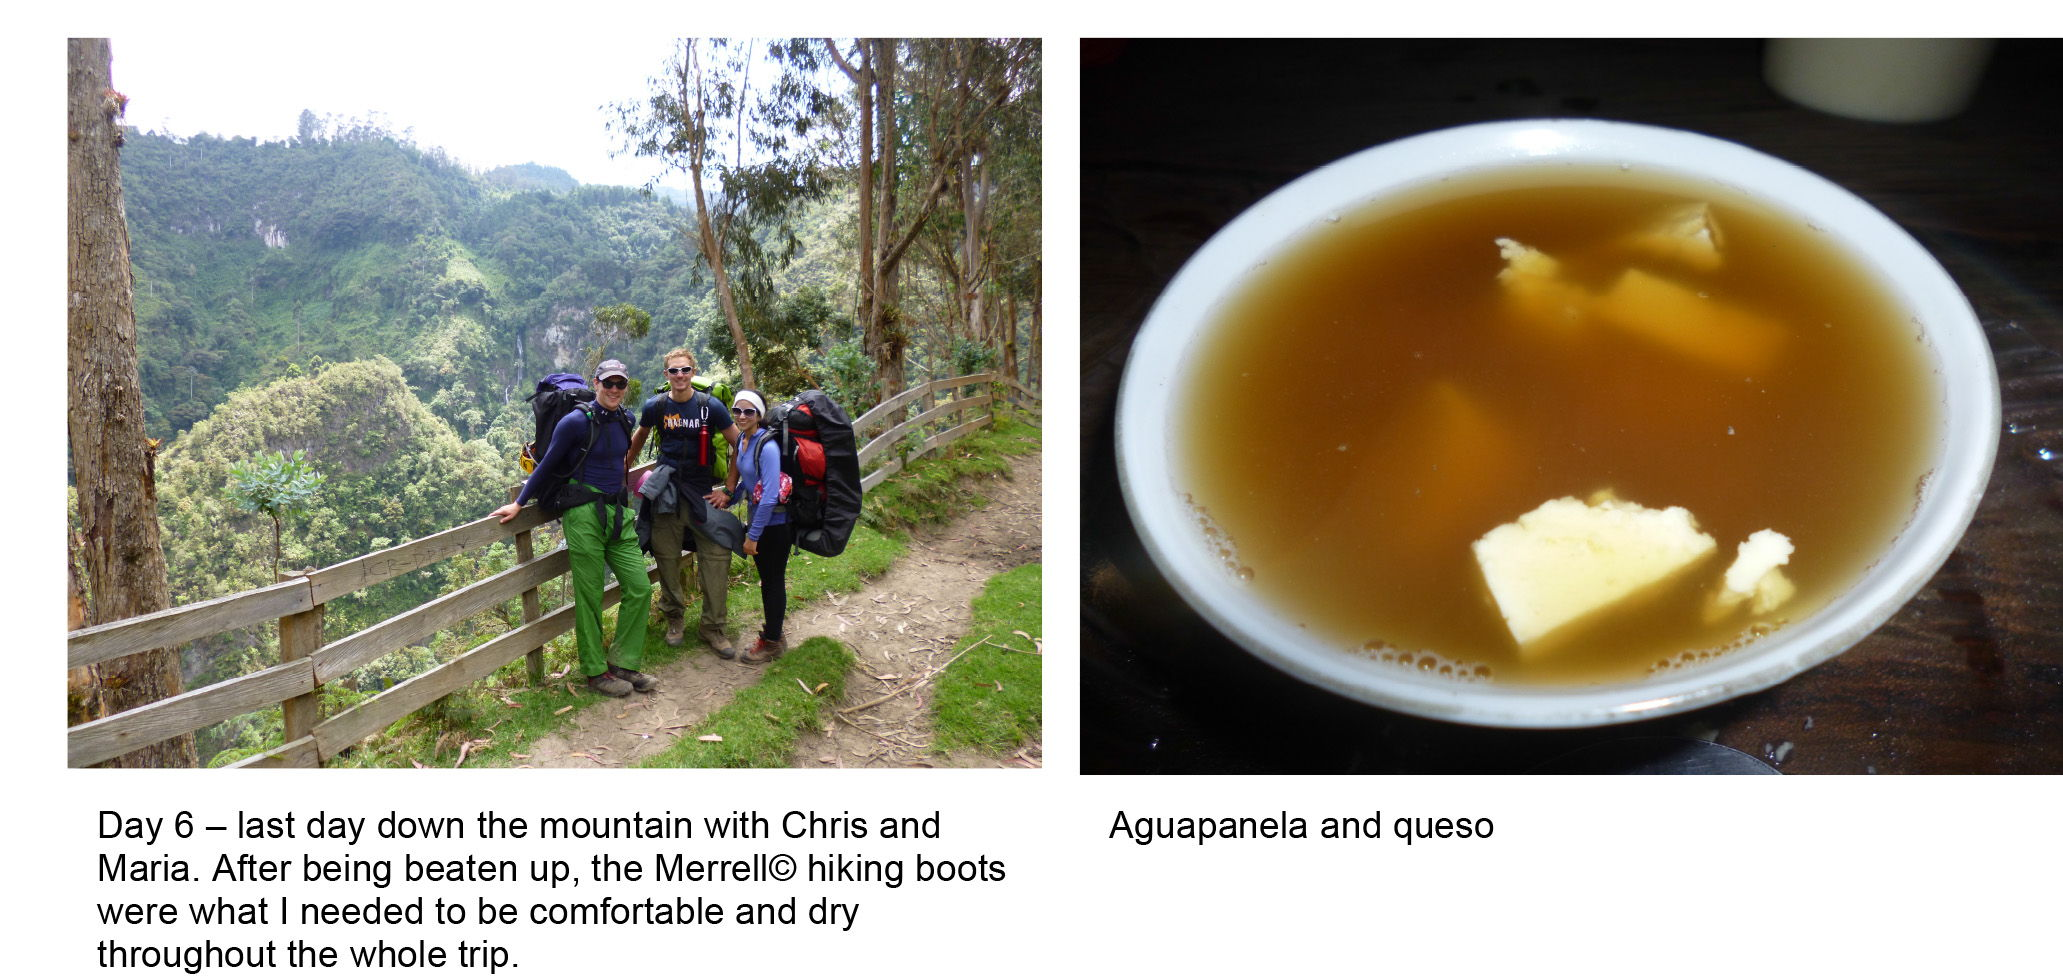 The Merrell Moab Hikers passed with flying colors - they kept feet comfortable and dry all the way to the snow-covered Colombian summit of Tolima and back again